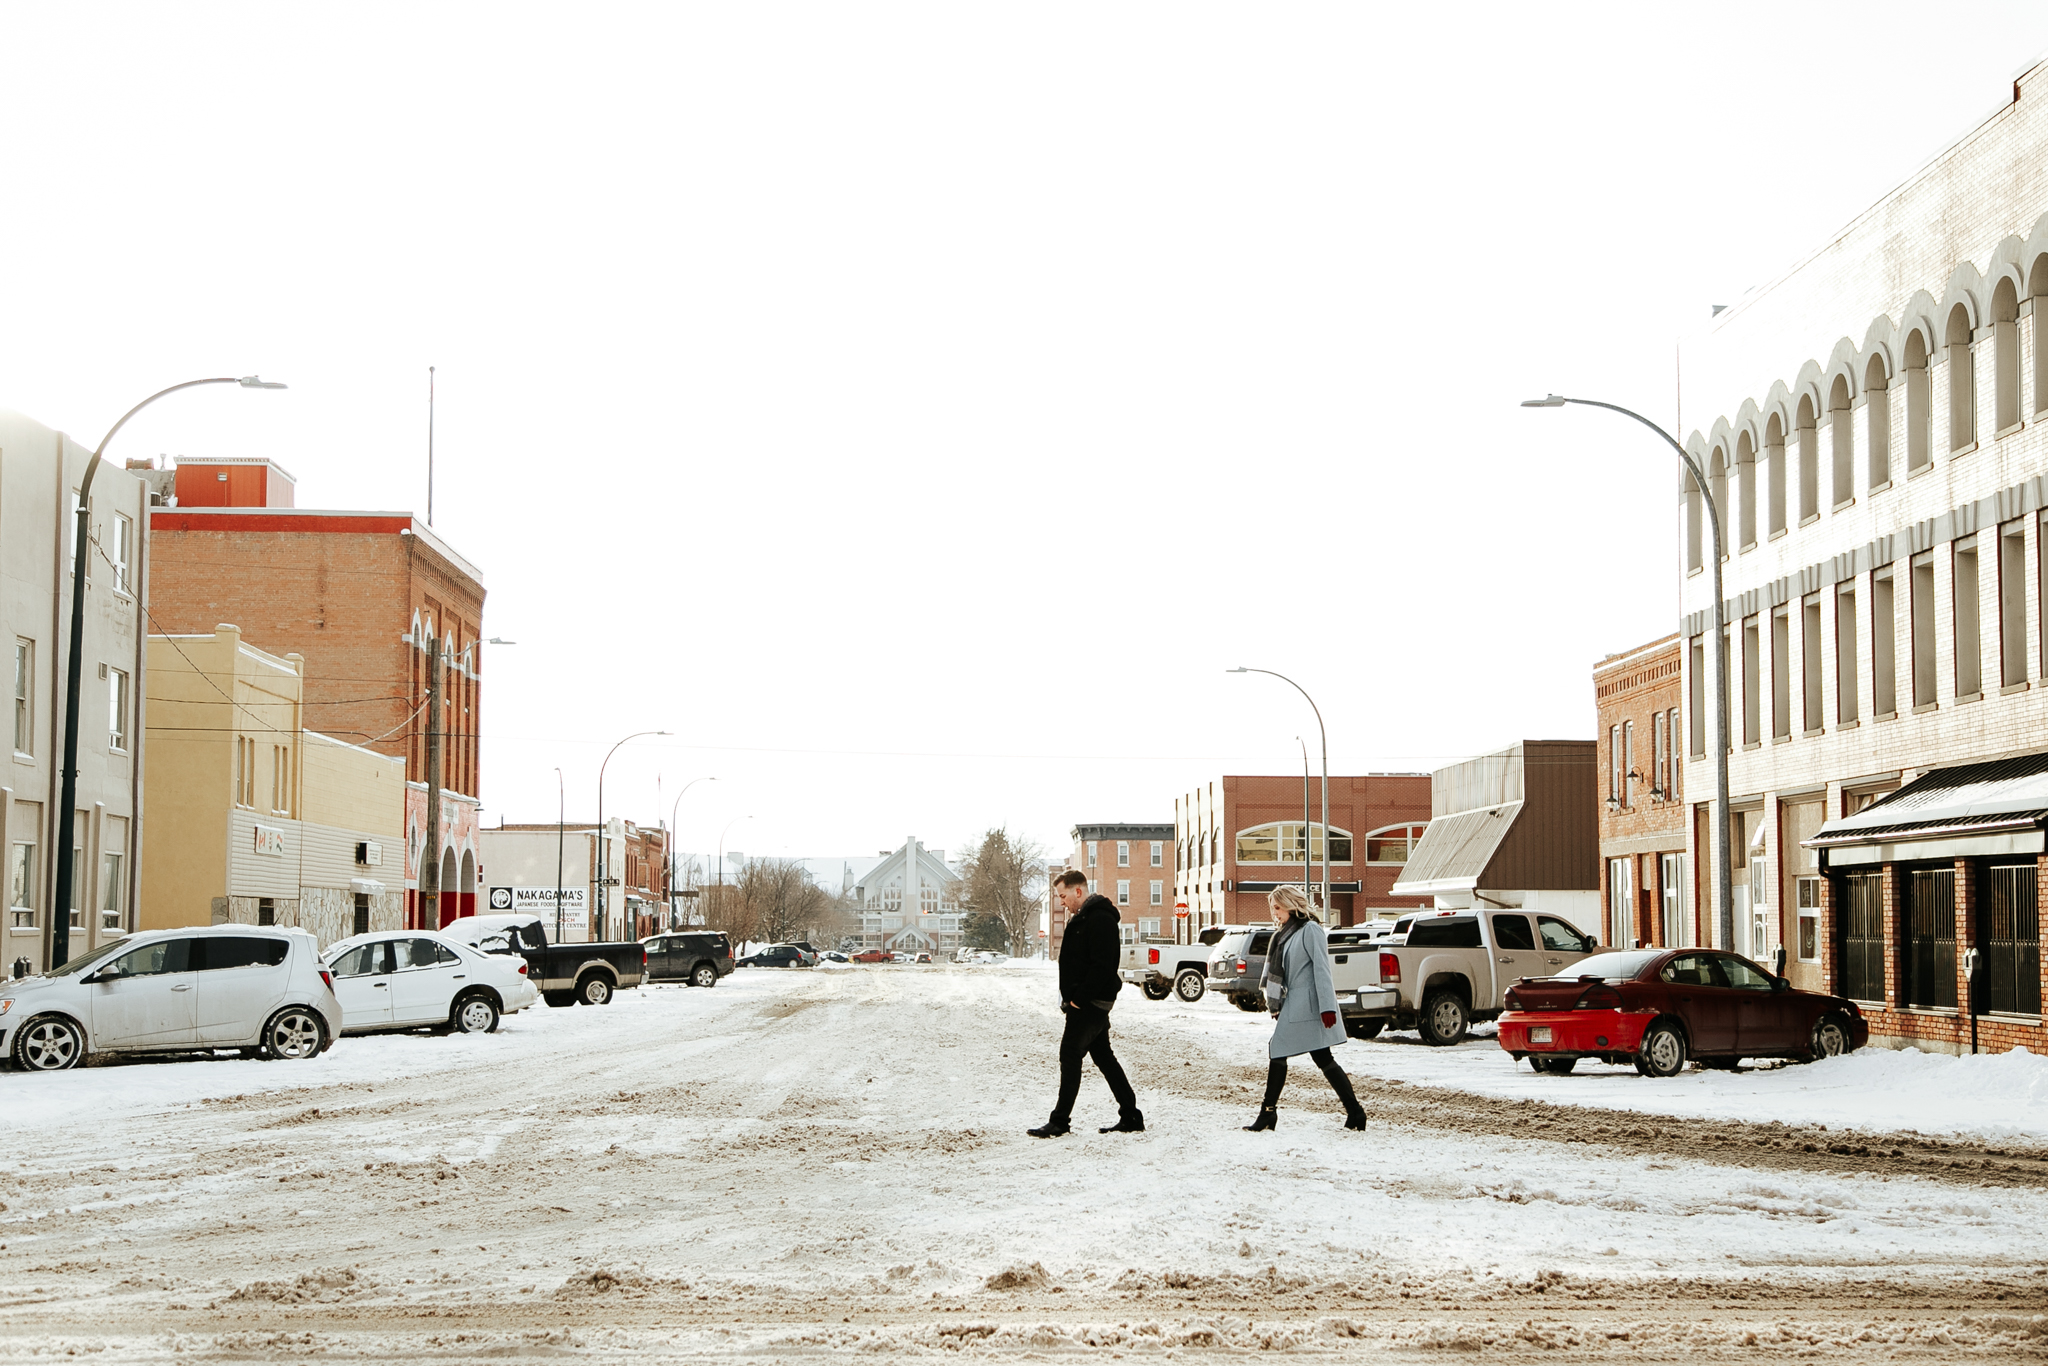 lethbridge-photographer-love-and-be-loved-photography-brandon-danielle-winter-engagement-downtown-yql-picture-image-photo-51.jpg